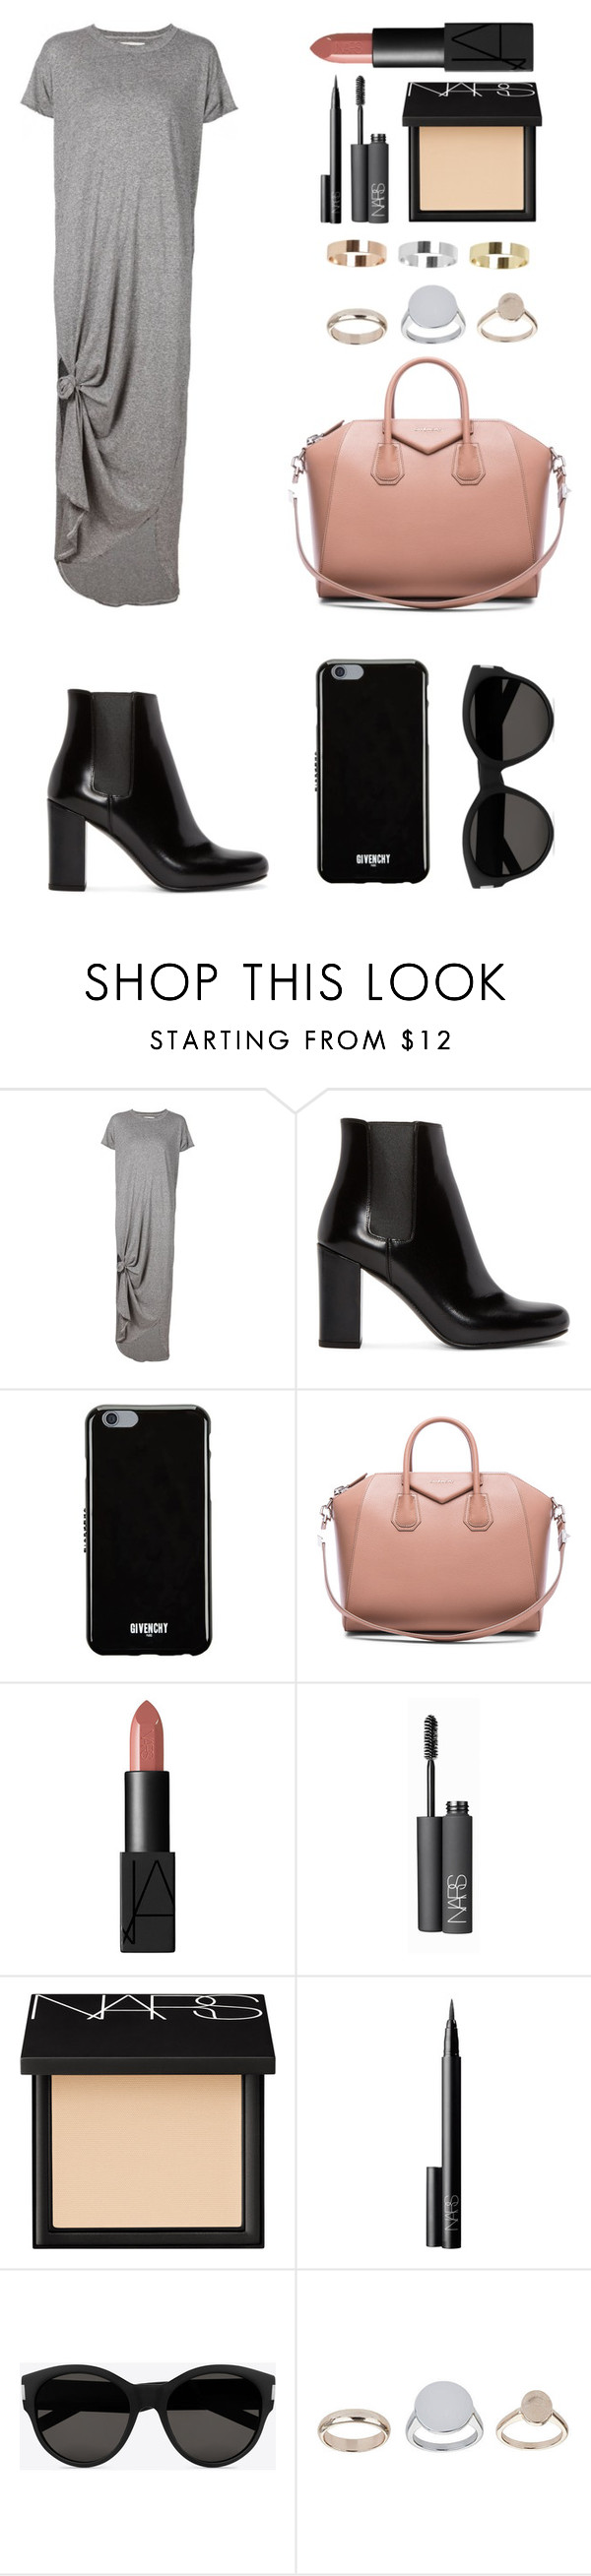 """Untitled #1943"" by ordinarydays ❤ liked on Polyvore featuring The Great, Yves Saint Laurent, Givenchy, NARS Cosmetics, Topshop, women's clothing, women, female, woman and misses"